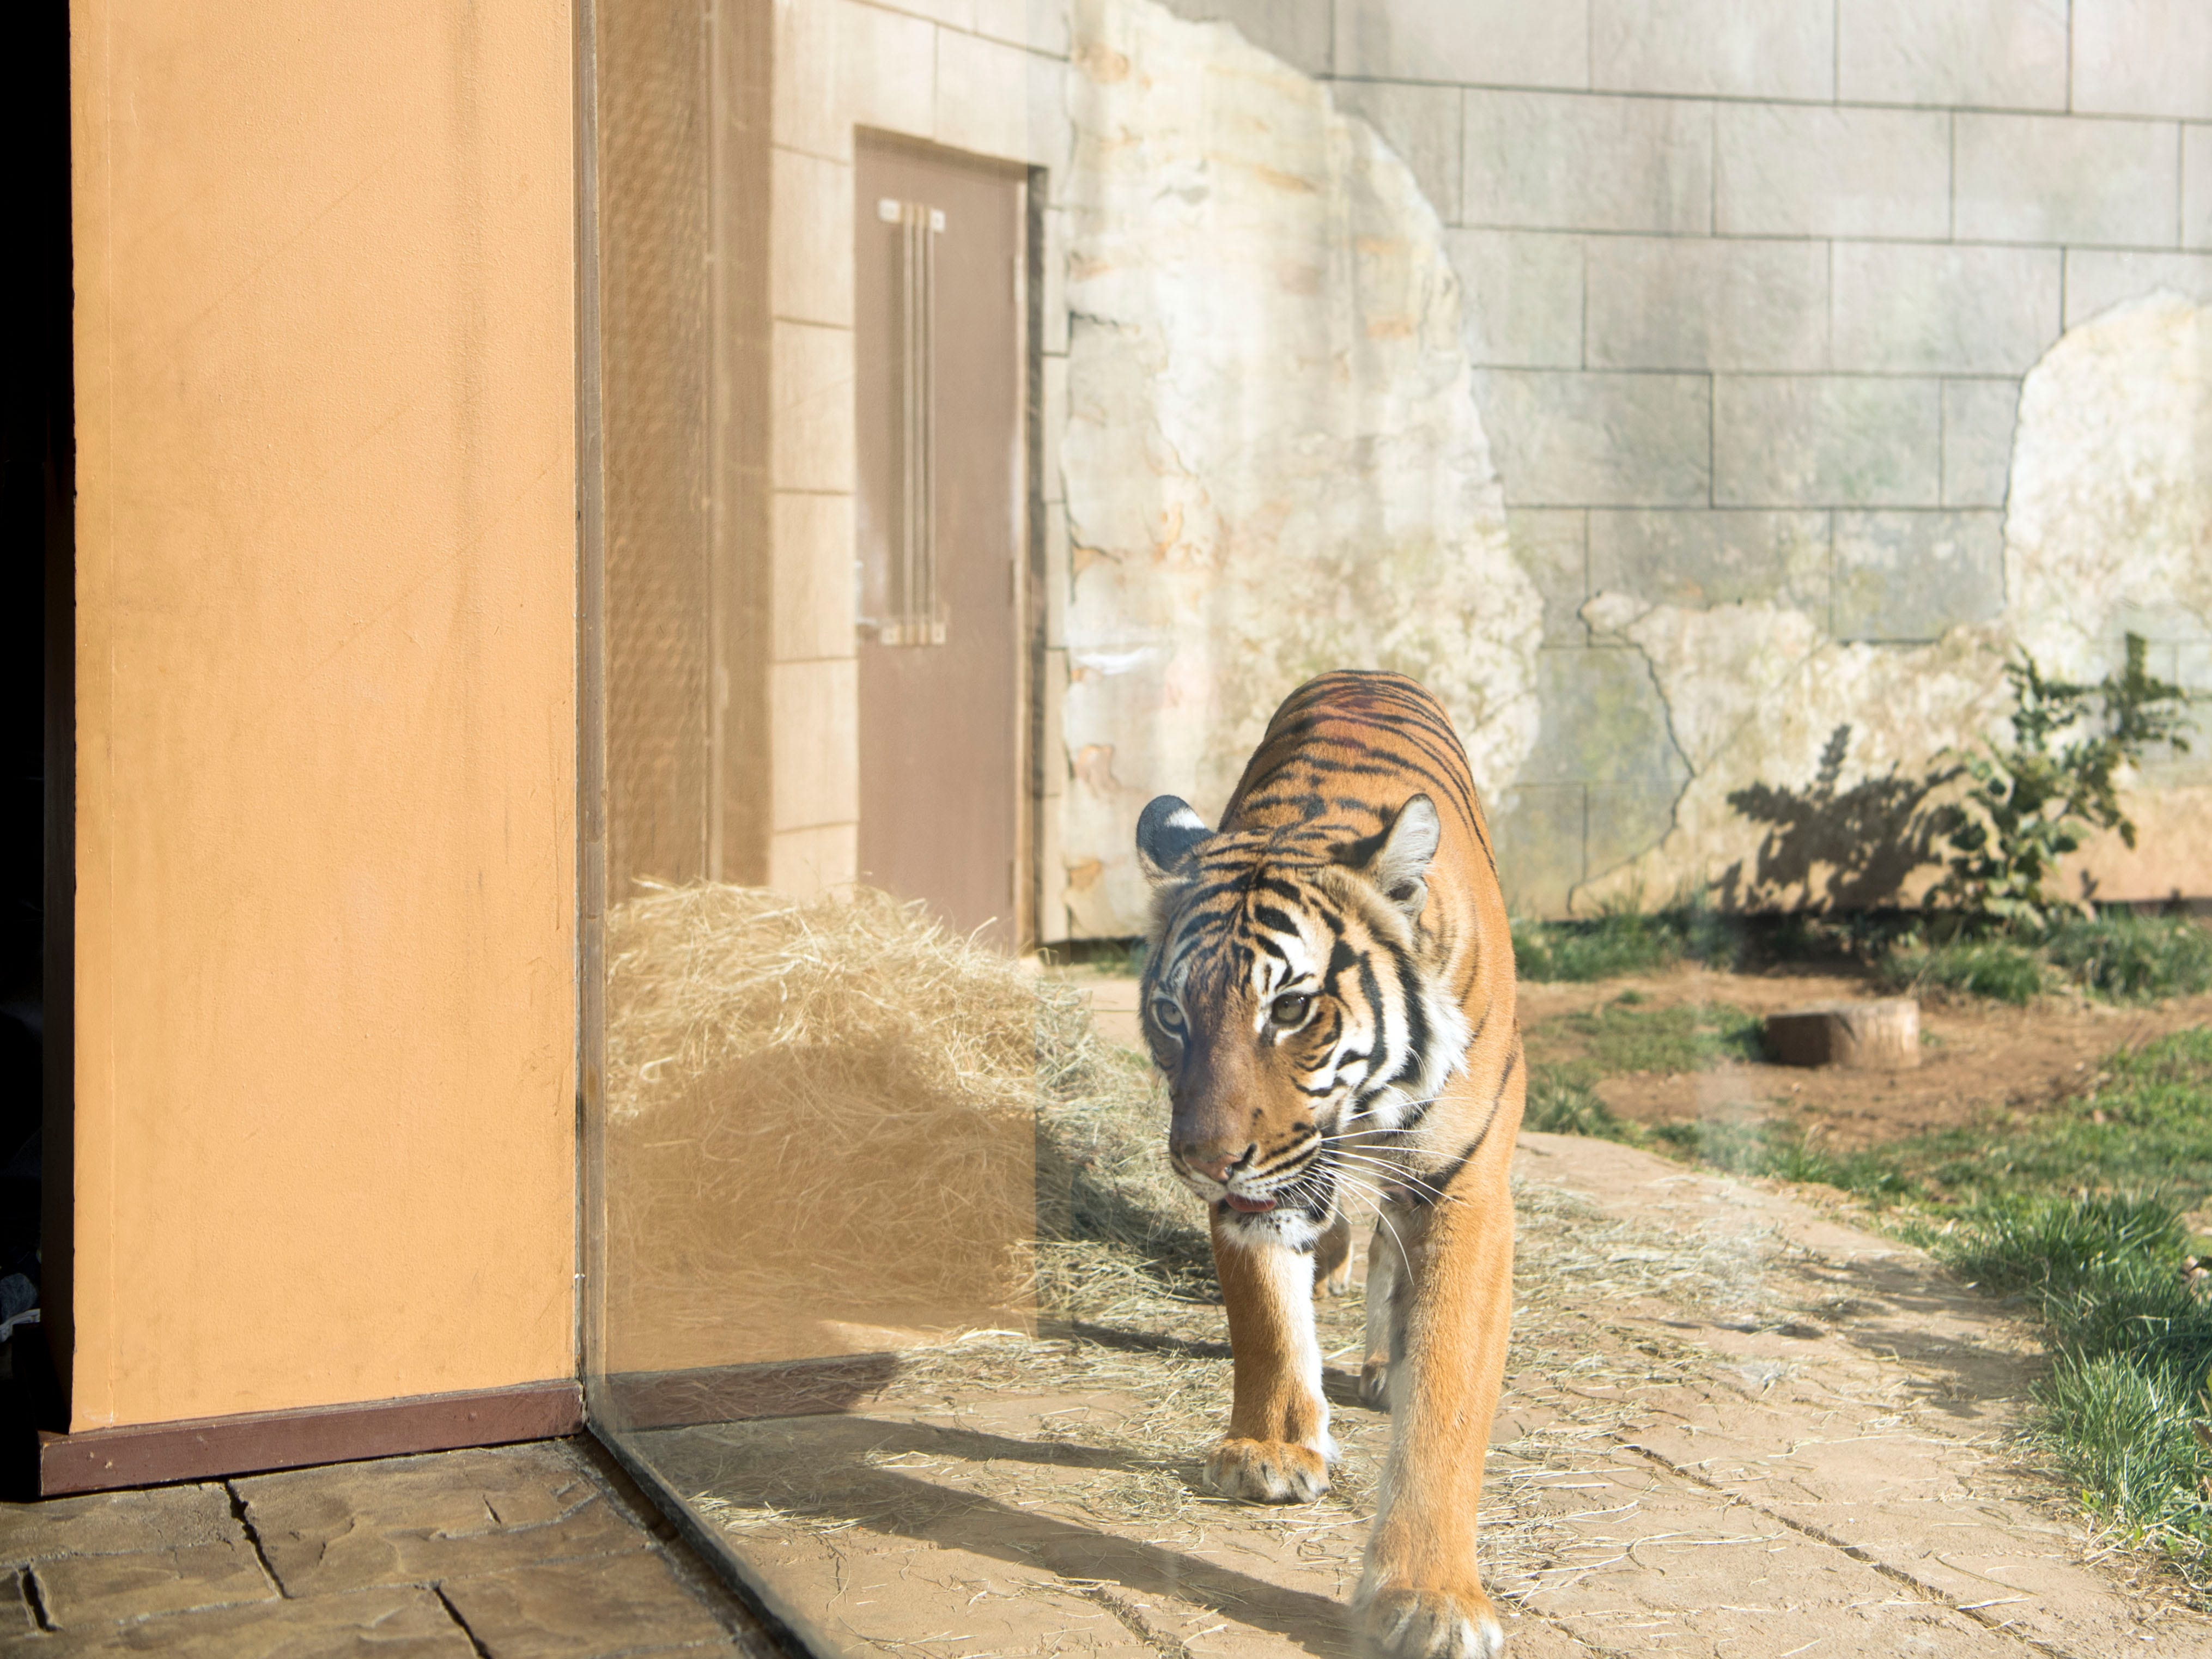 Arya, a Malayan tiger, paces near the viewing window at Zoo Knoxville's Tiger Forest habitat on Feb. 3, 2019.